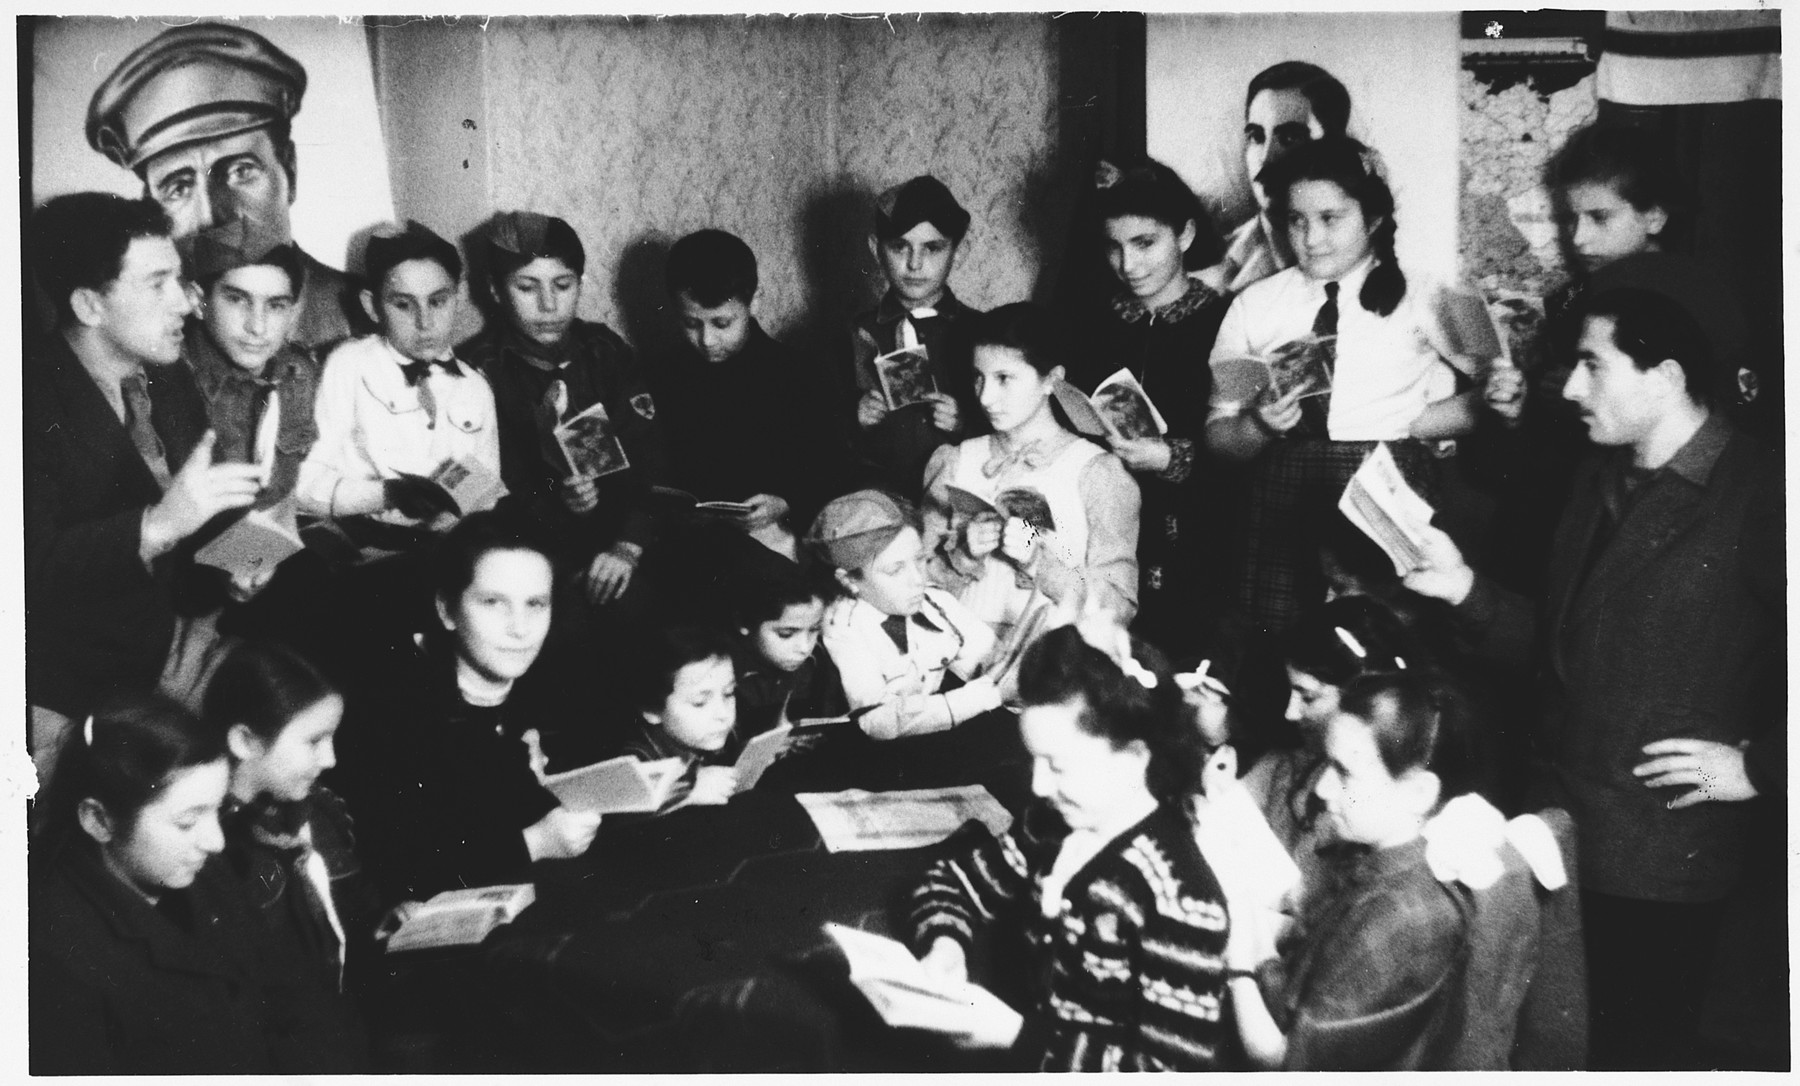 Children in the Foehrenwald displaced persons camp read together during a meeting beneath a portrait of Joseph Trumpeldor.